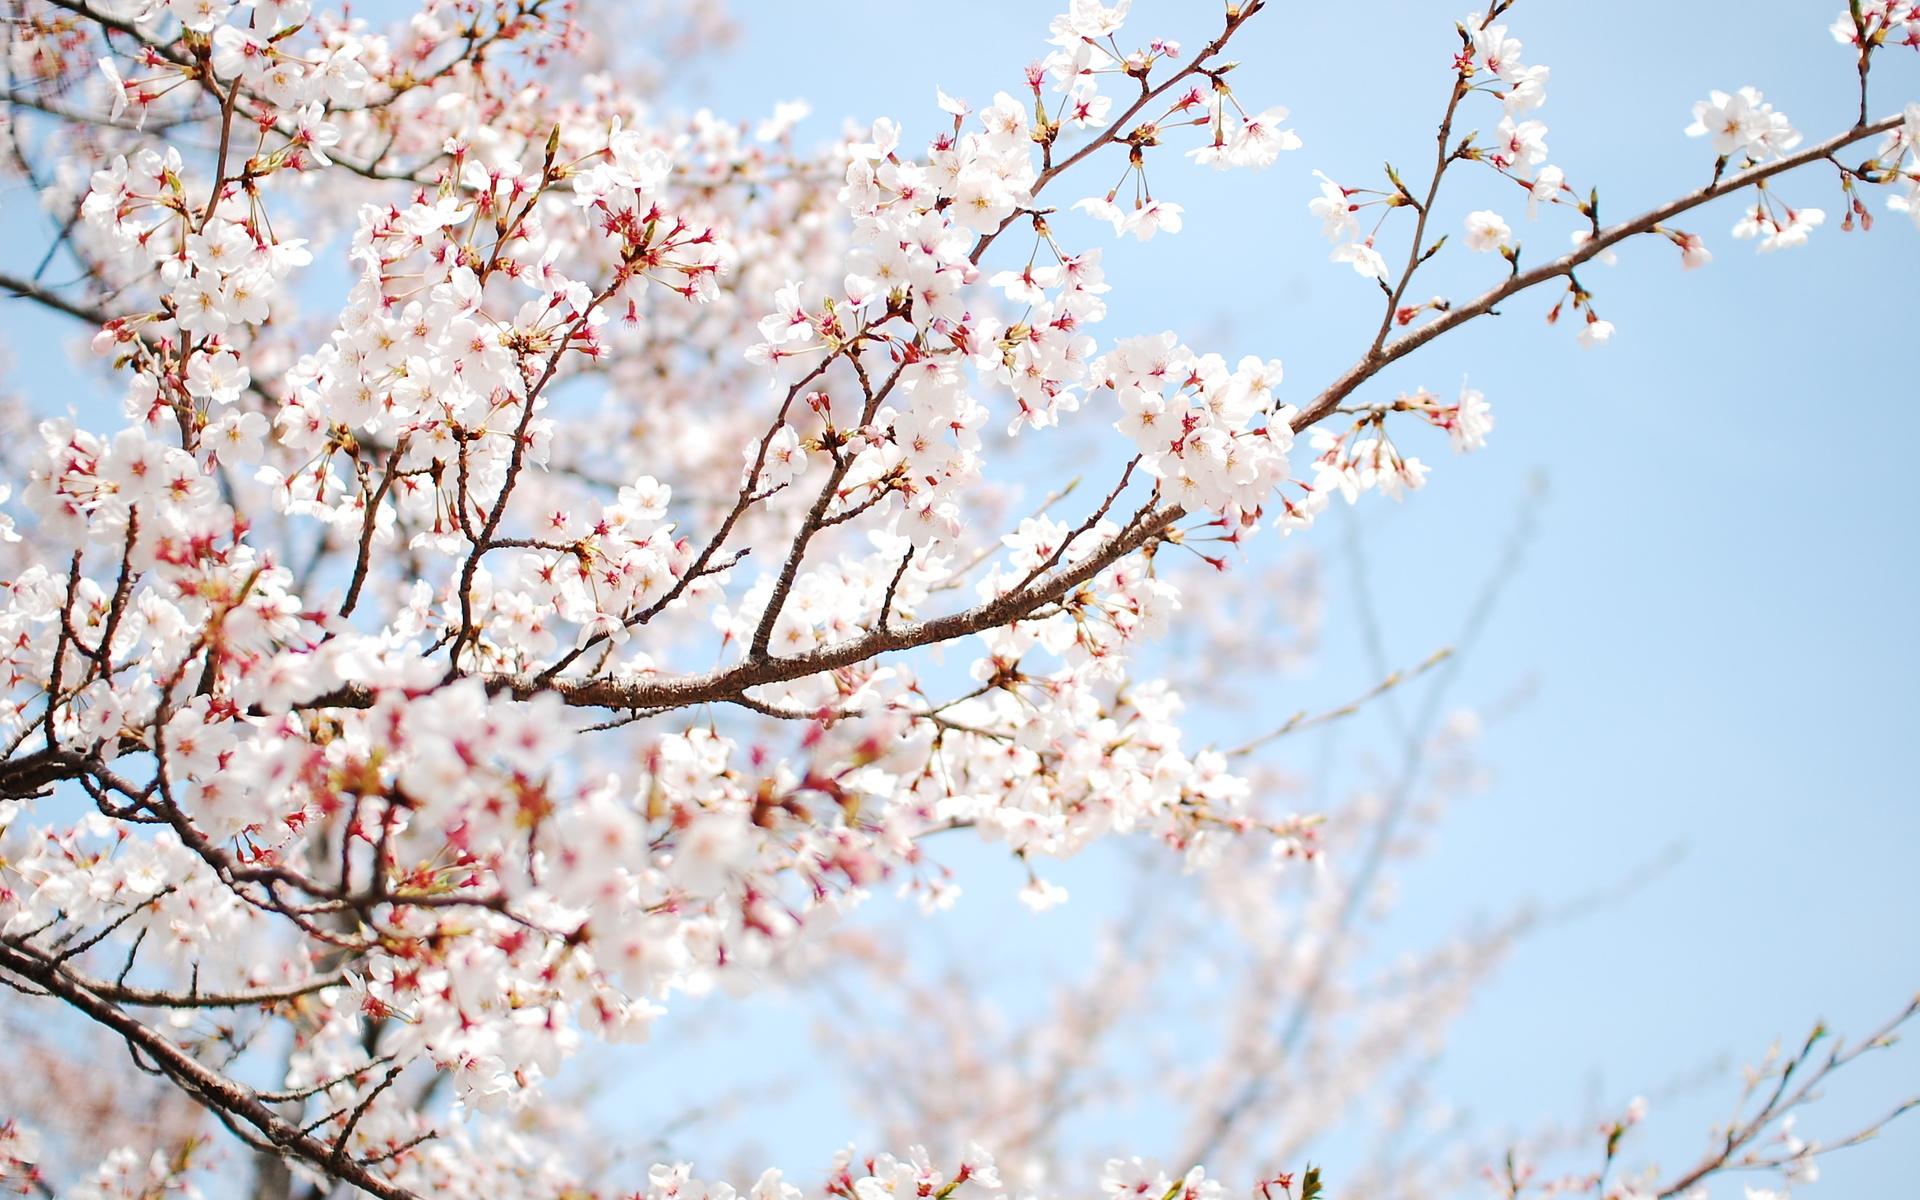 cherry blossom branch - photo #12